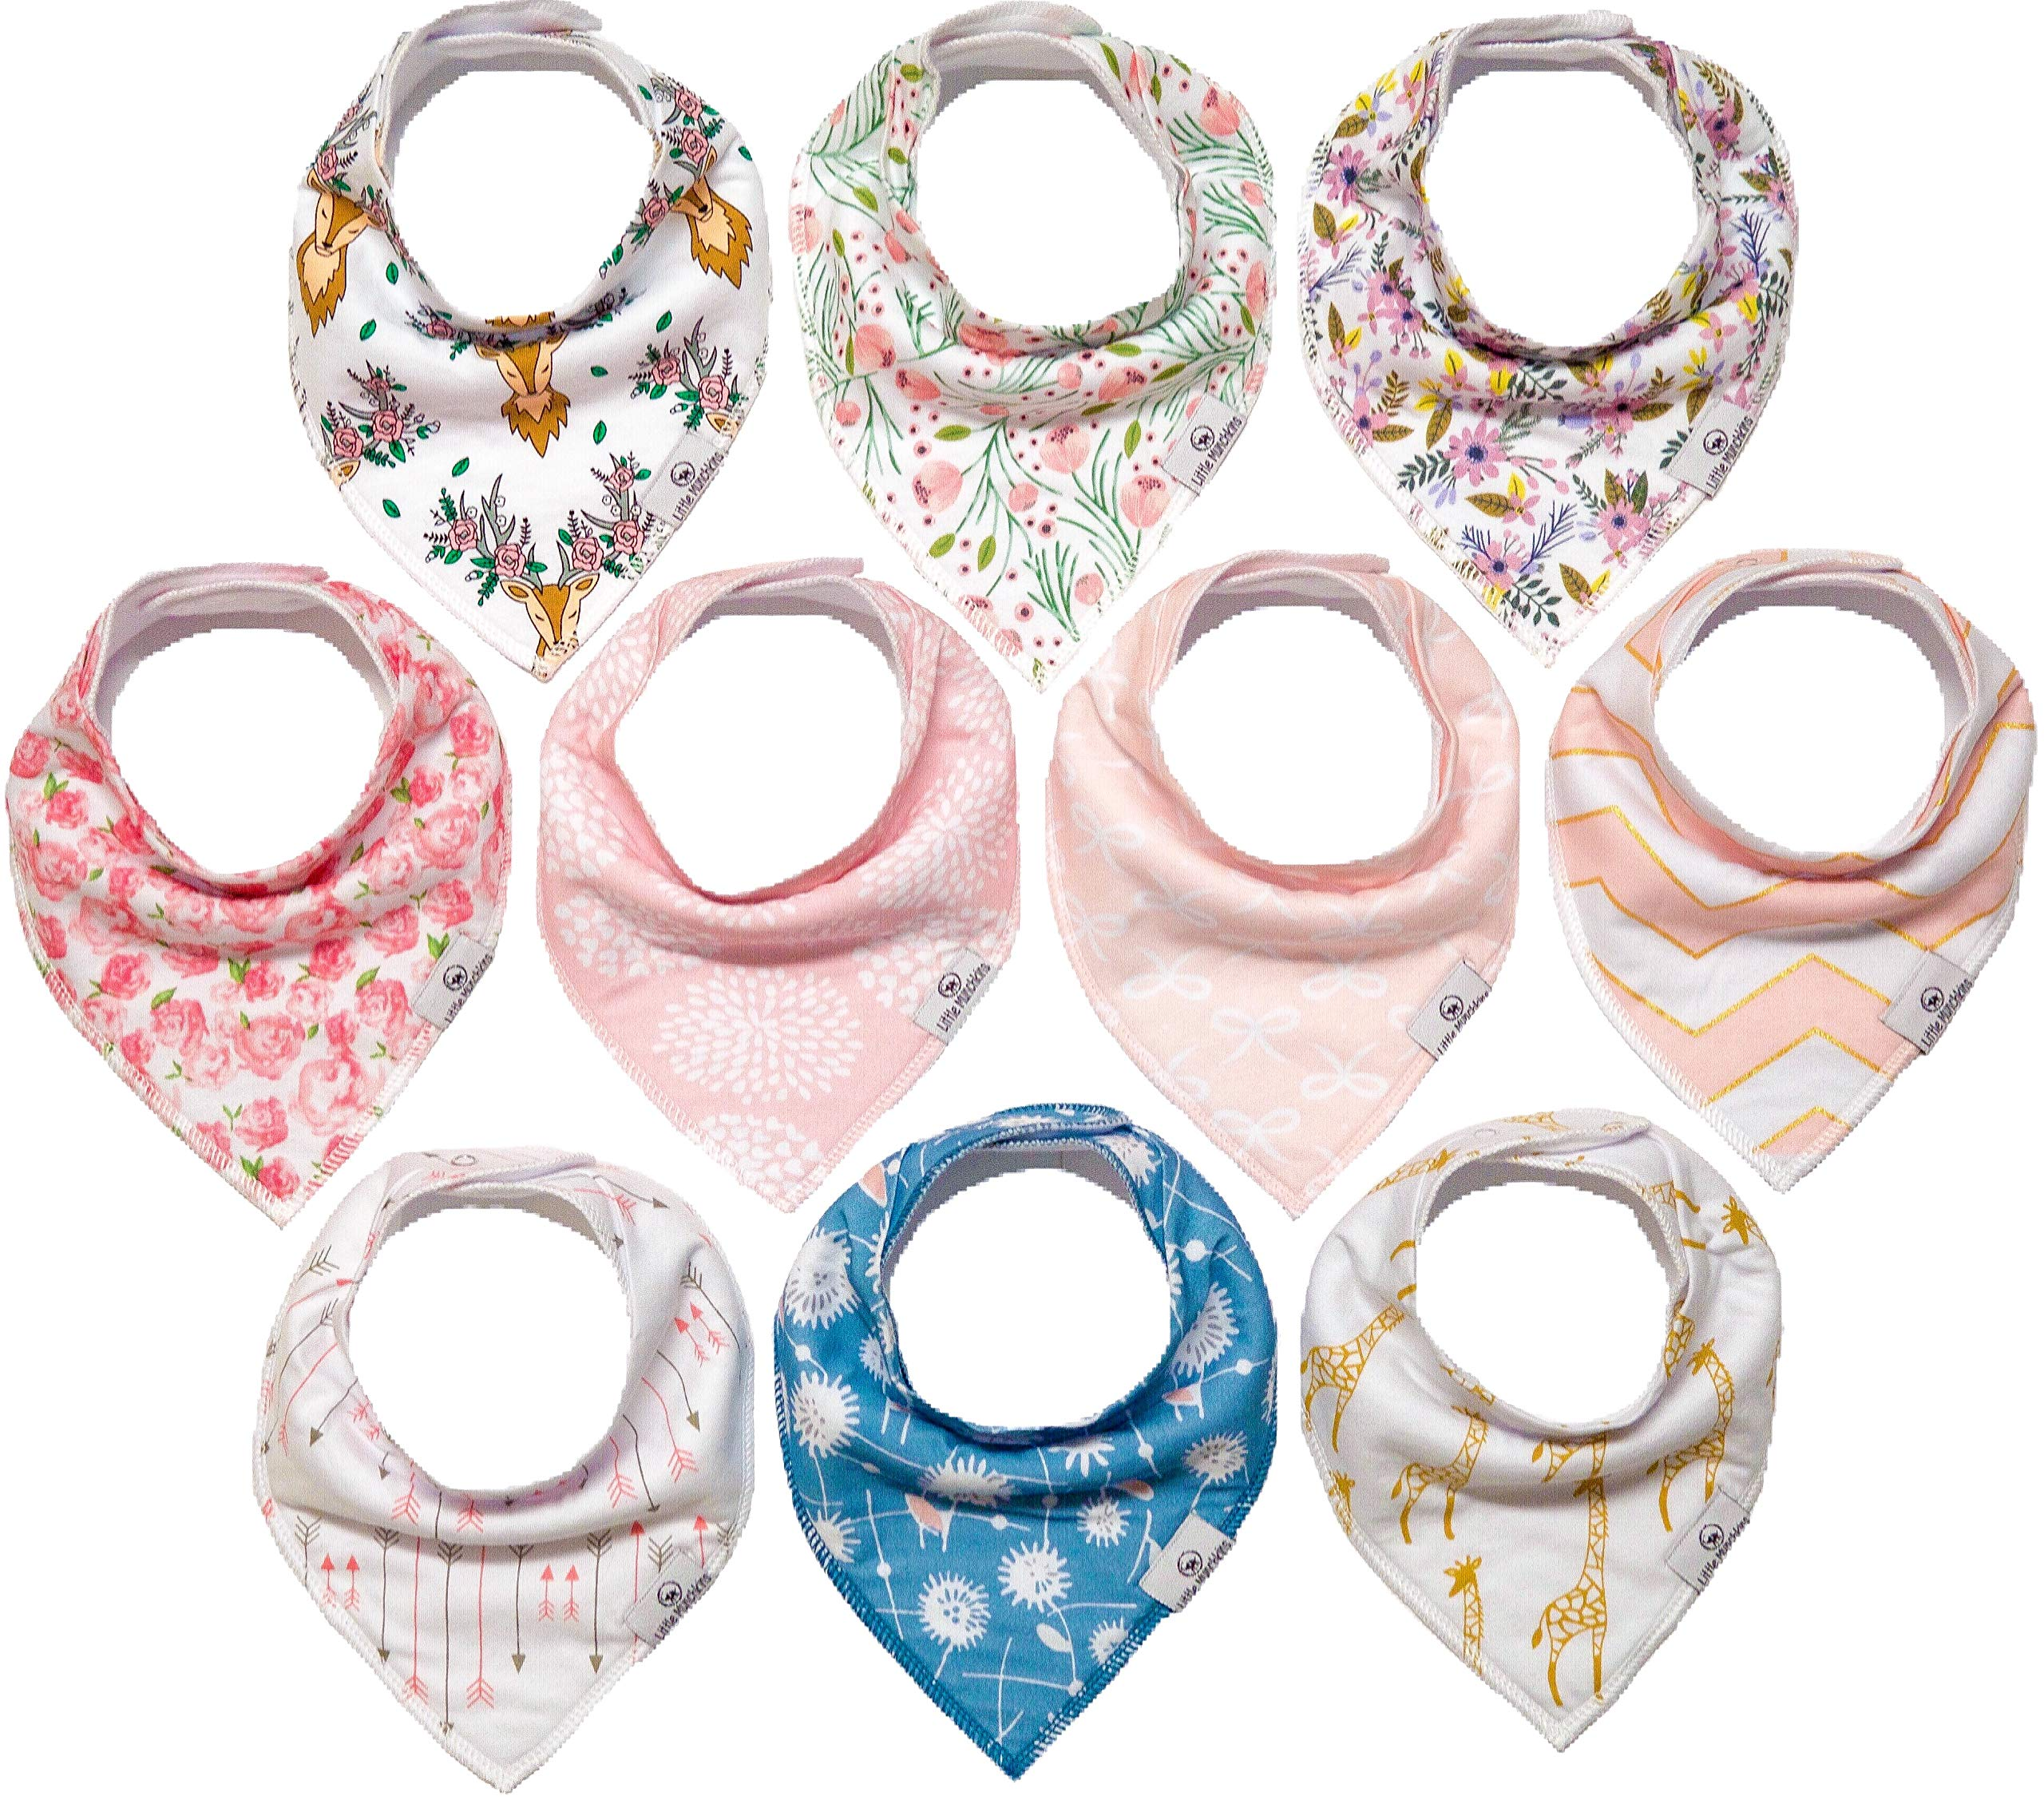 Little Munchkins 10-Pack Girl Organic Cotton - Fleece - Super Absorbent - Bandana Bibs for Girls - Bandana Bibs Girl - Drool Bibs Girl